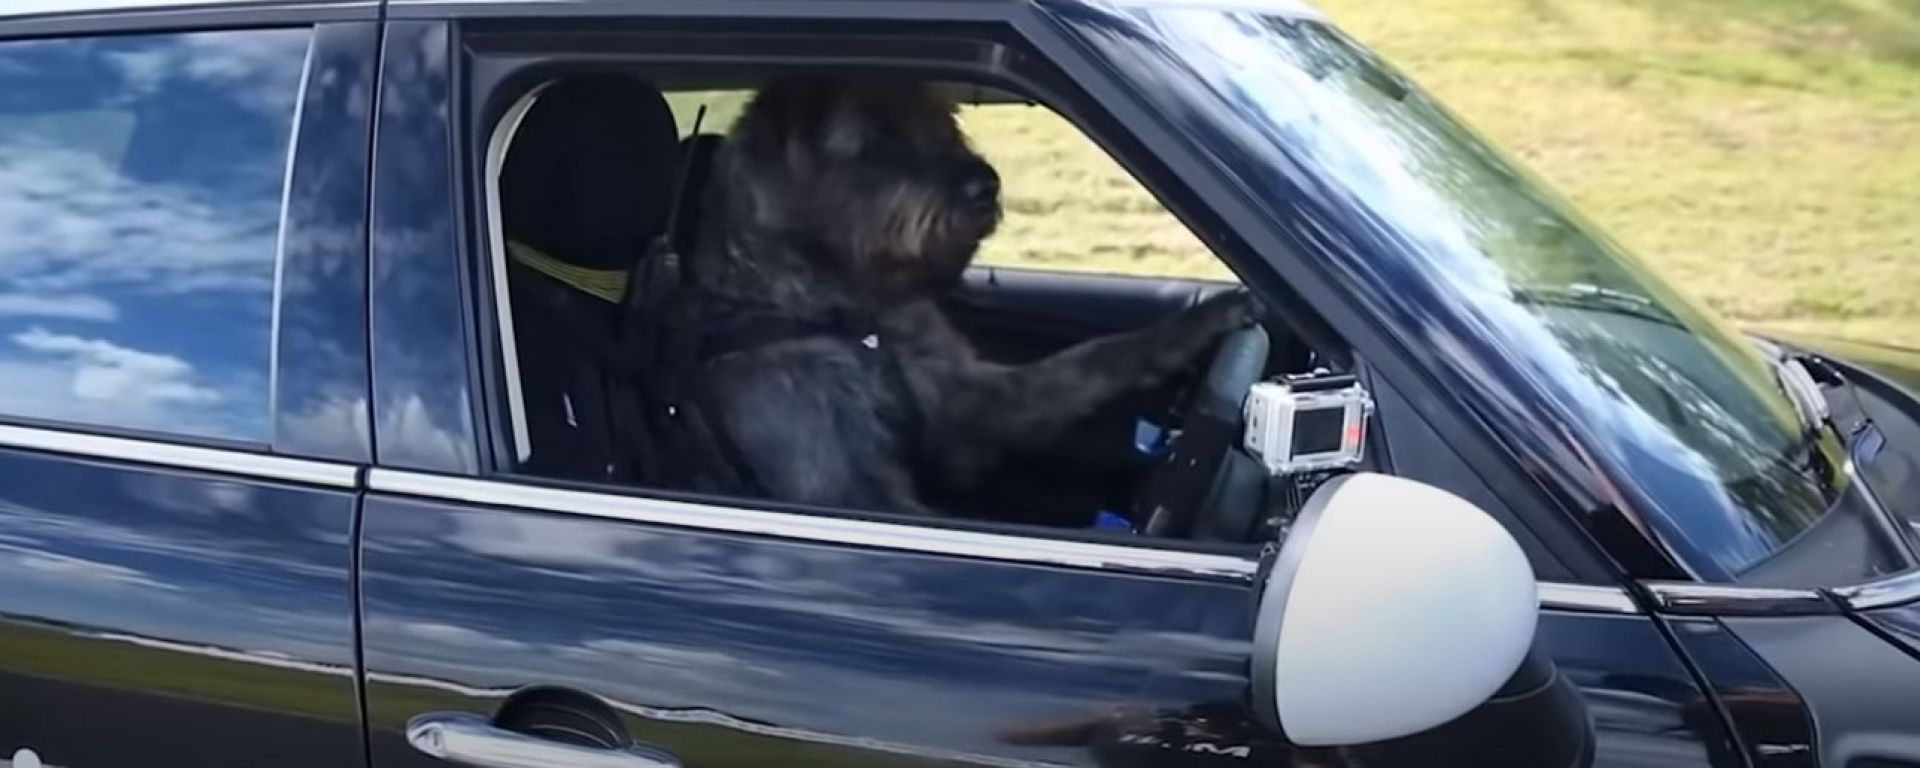 Cani al volante: il video su Youtube